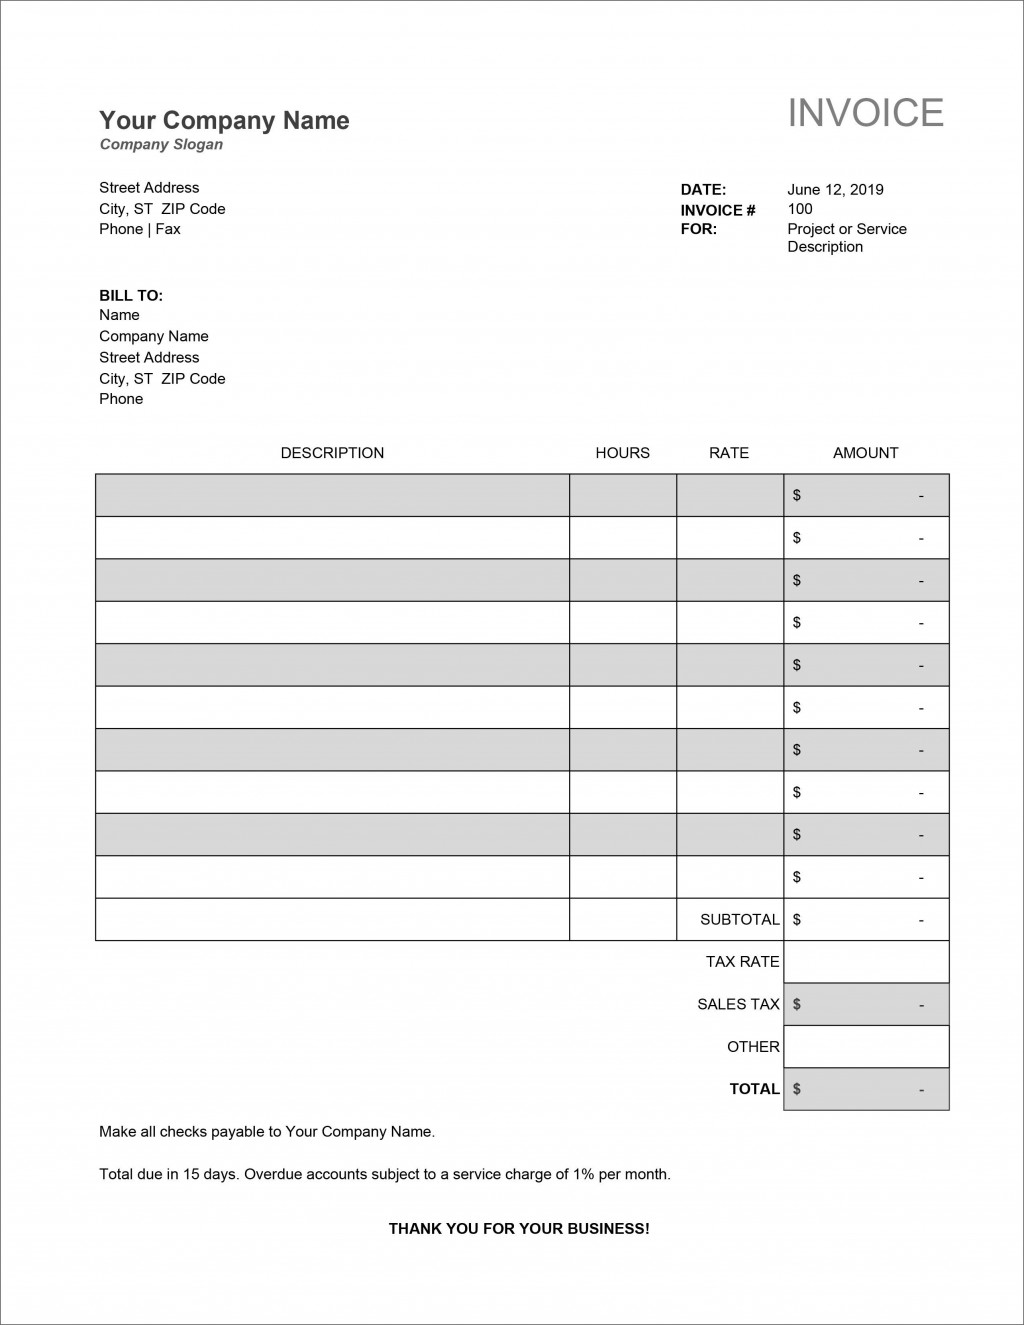 008 Rare Invoice Template Excel Free High Definition  Proforma DownloadLarge